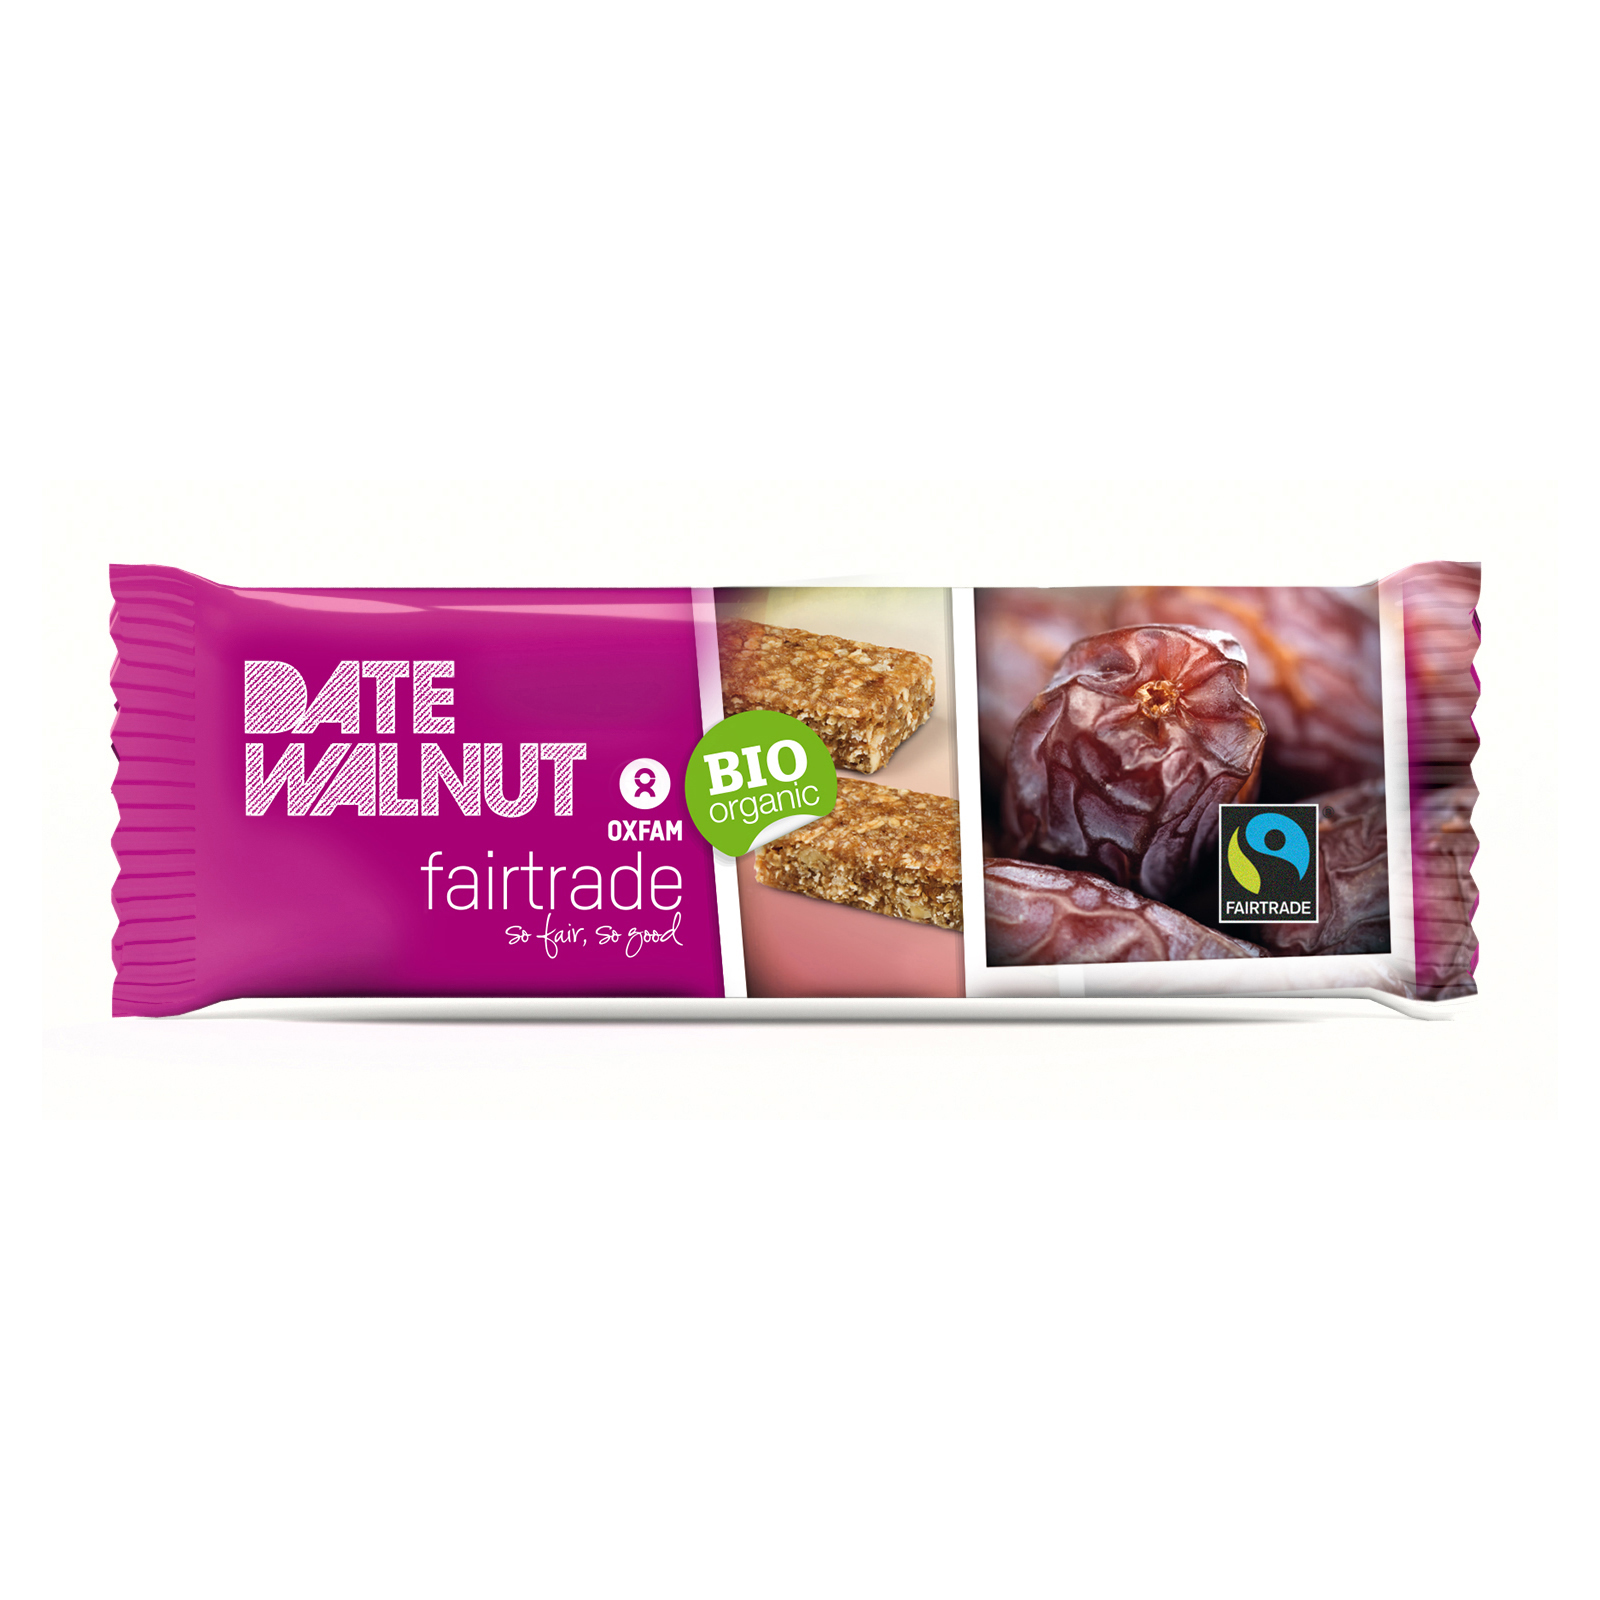 Date walnut snack bar (Oxfam Fair Trade) on Rosette Fair Trade